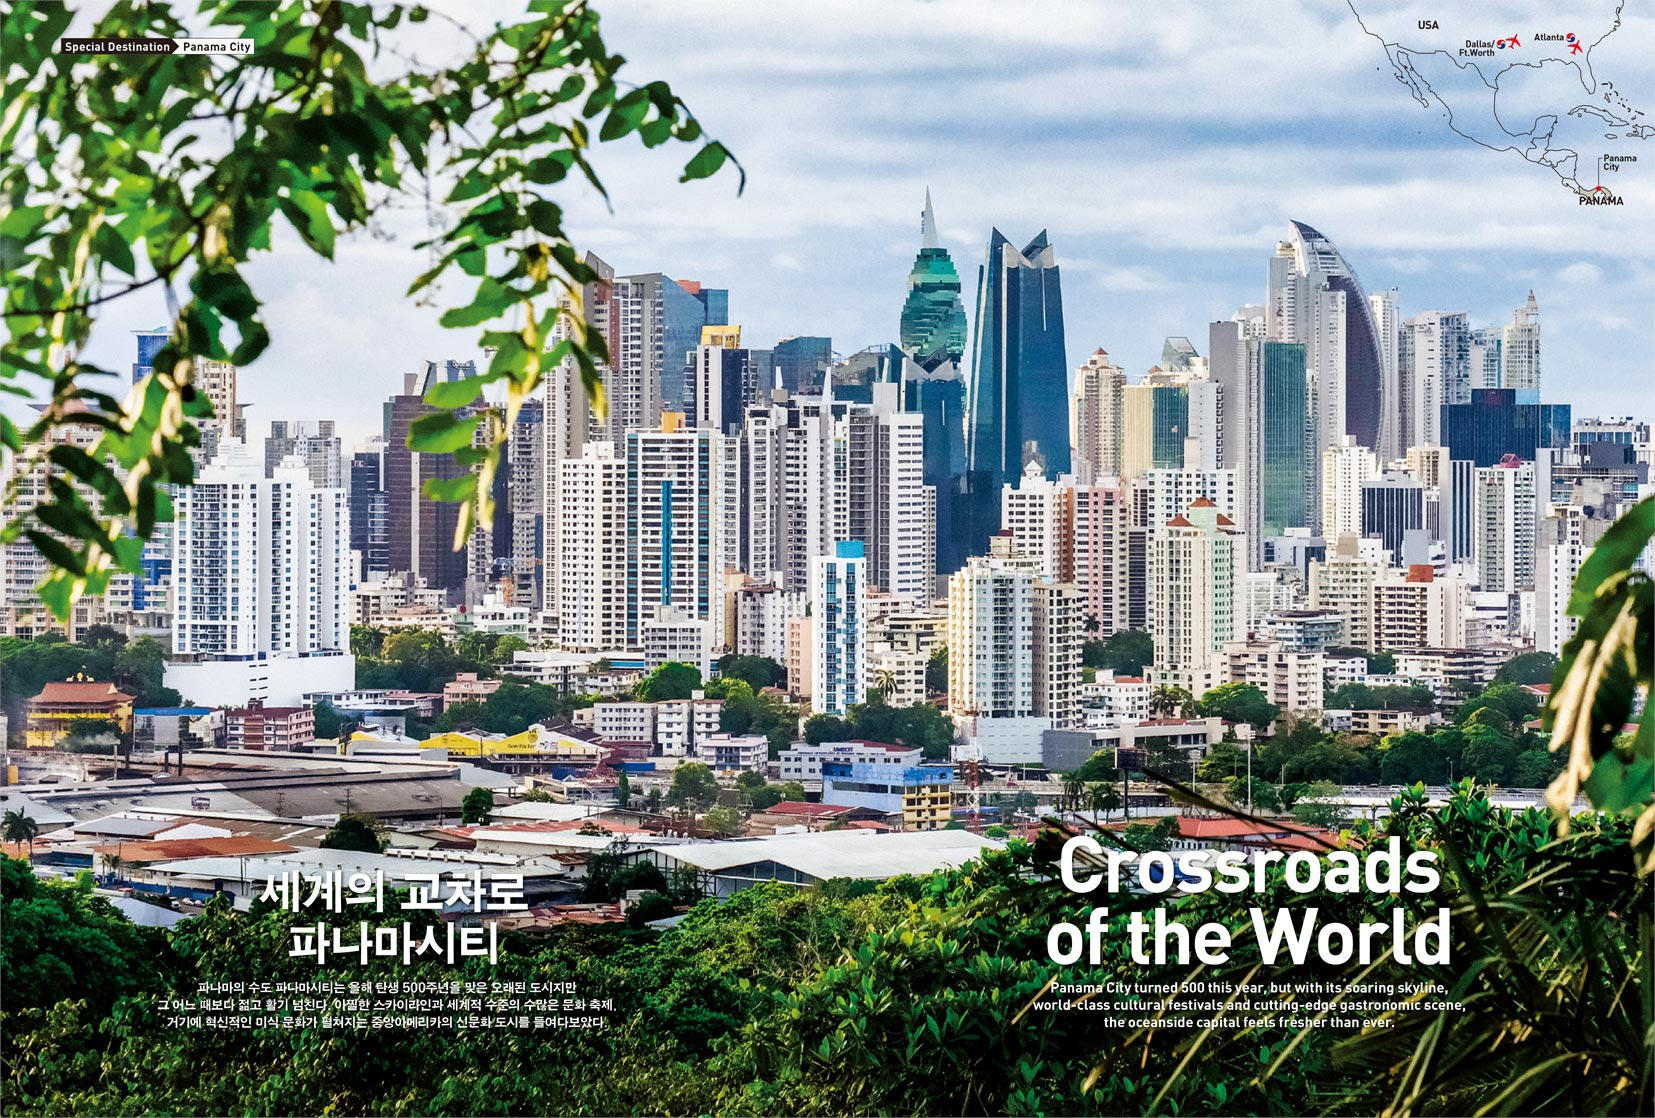 Panama City | Morning Calm Magazine, Korean Air | Simon Urwin | Published Articles & Photography